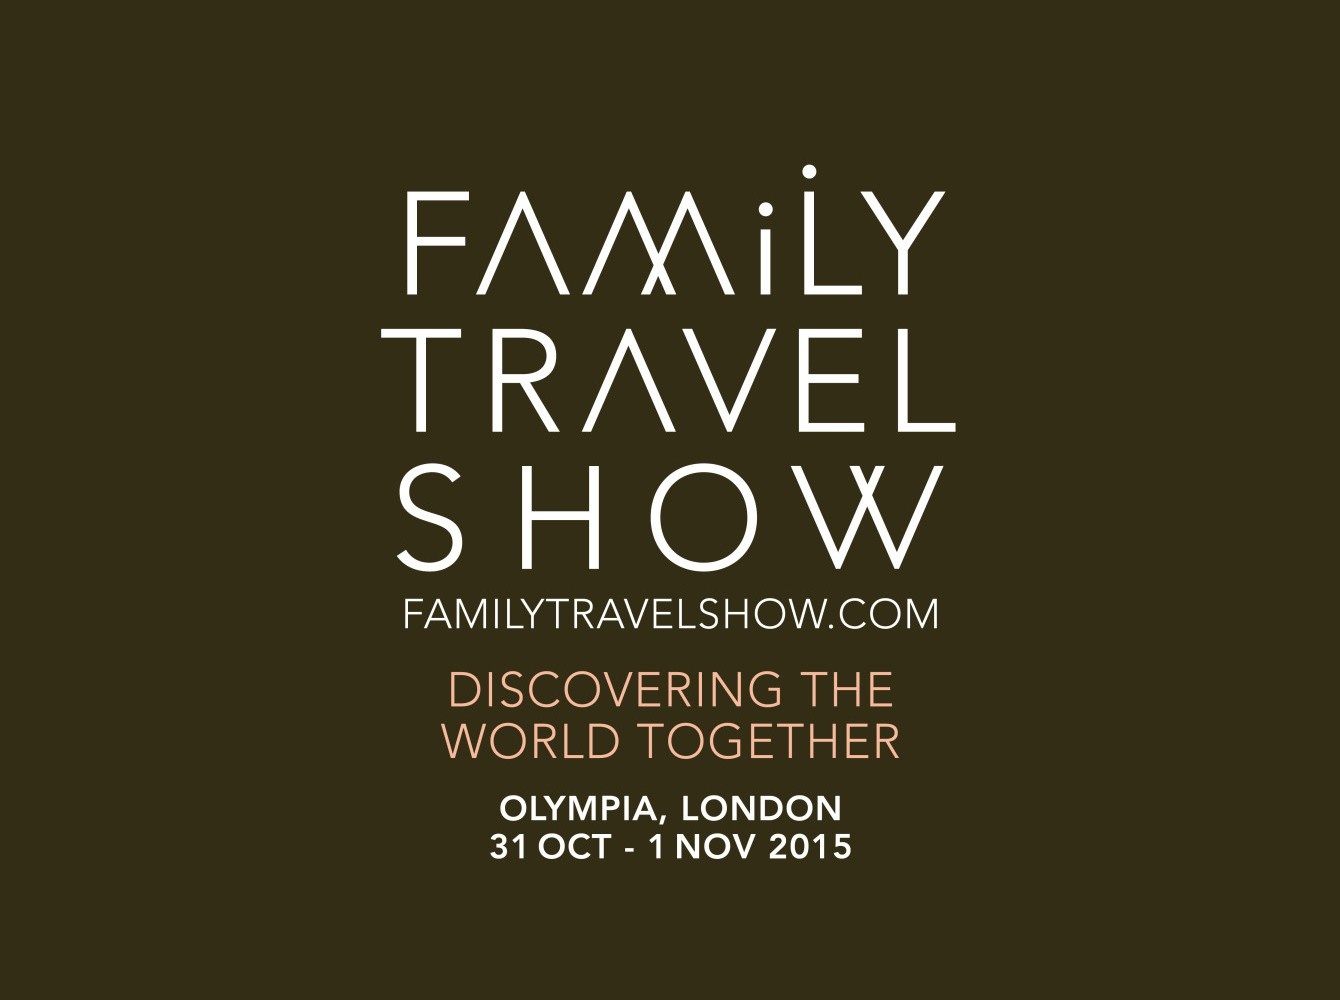 Family Travel Show 2015